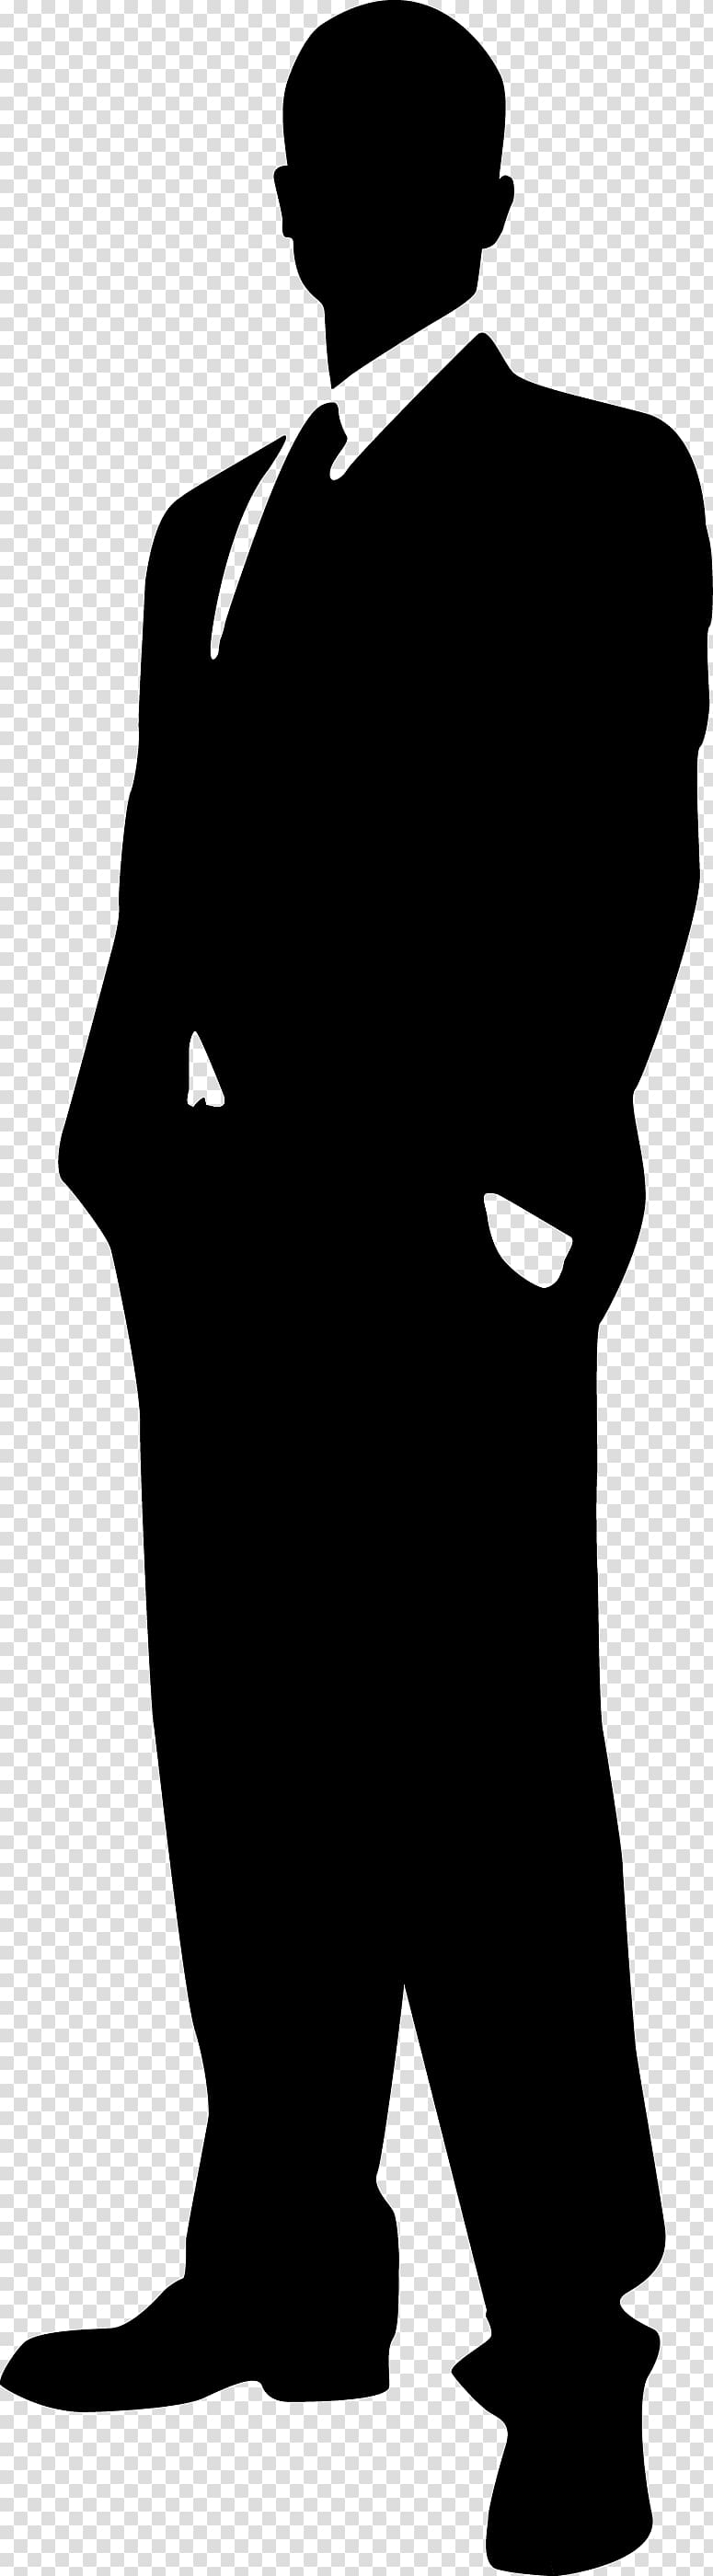 Silhouette , actor transparent background PNG clipart.